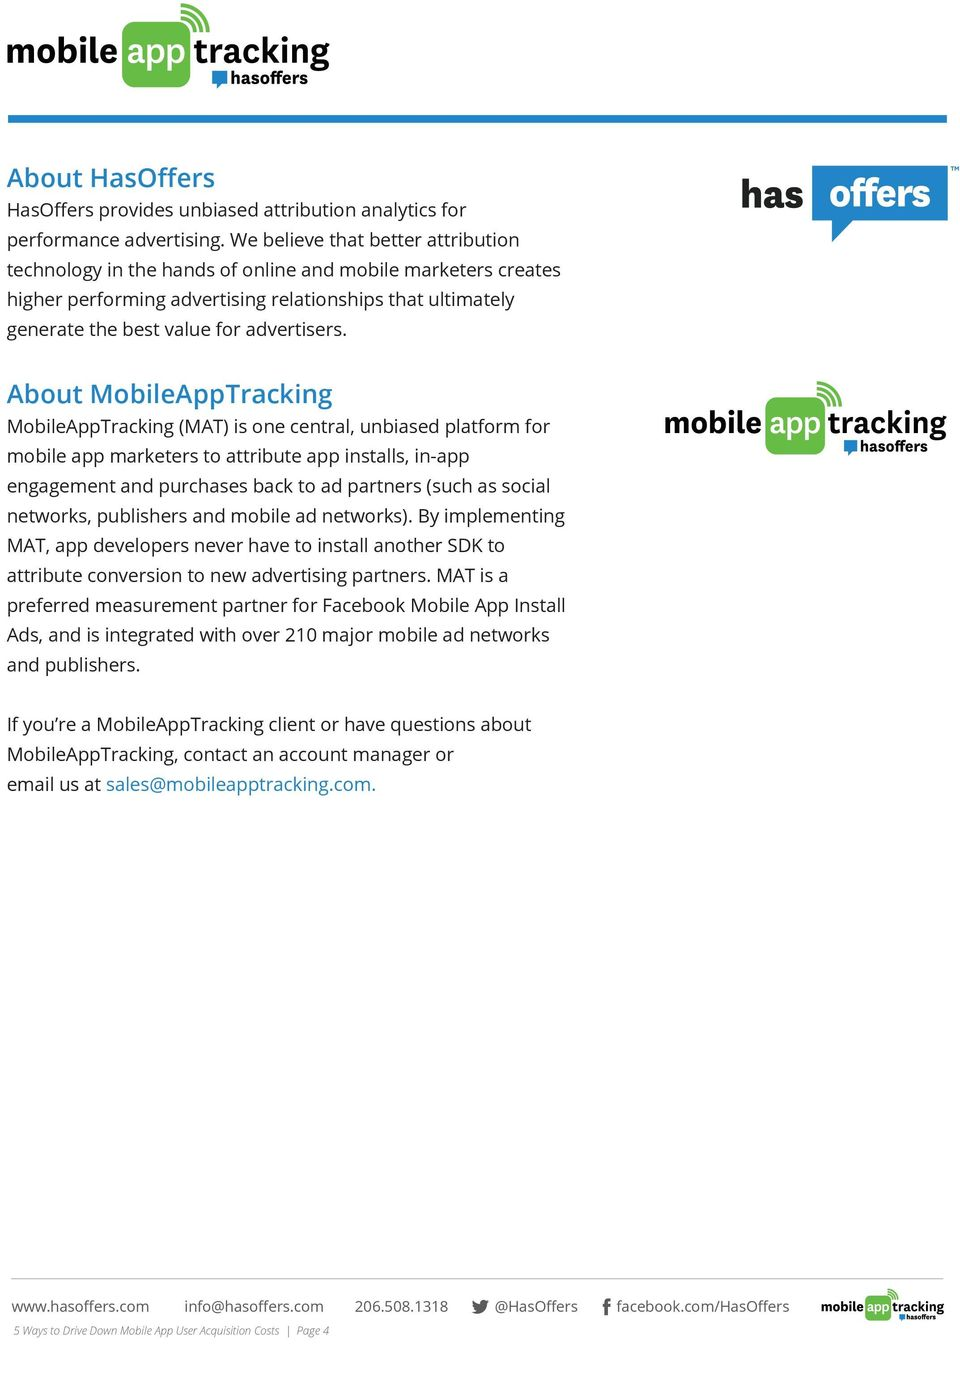 About MobileAppTracking MobileAppTracking (MAT) is one central, unbiased platform for mobile app marketers to attribute app installs, in-app engagement and purchases back to ad partners (such as